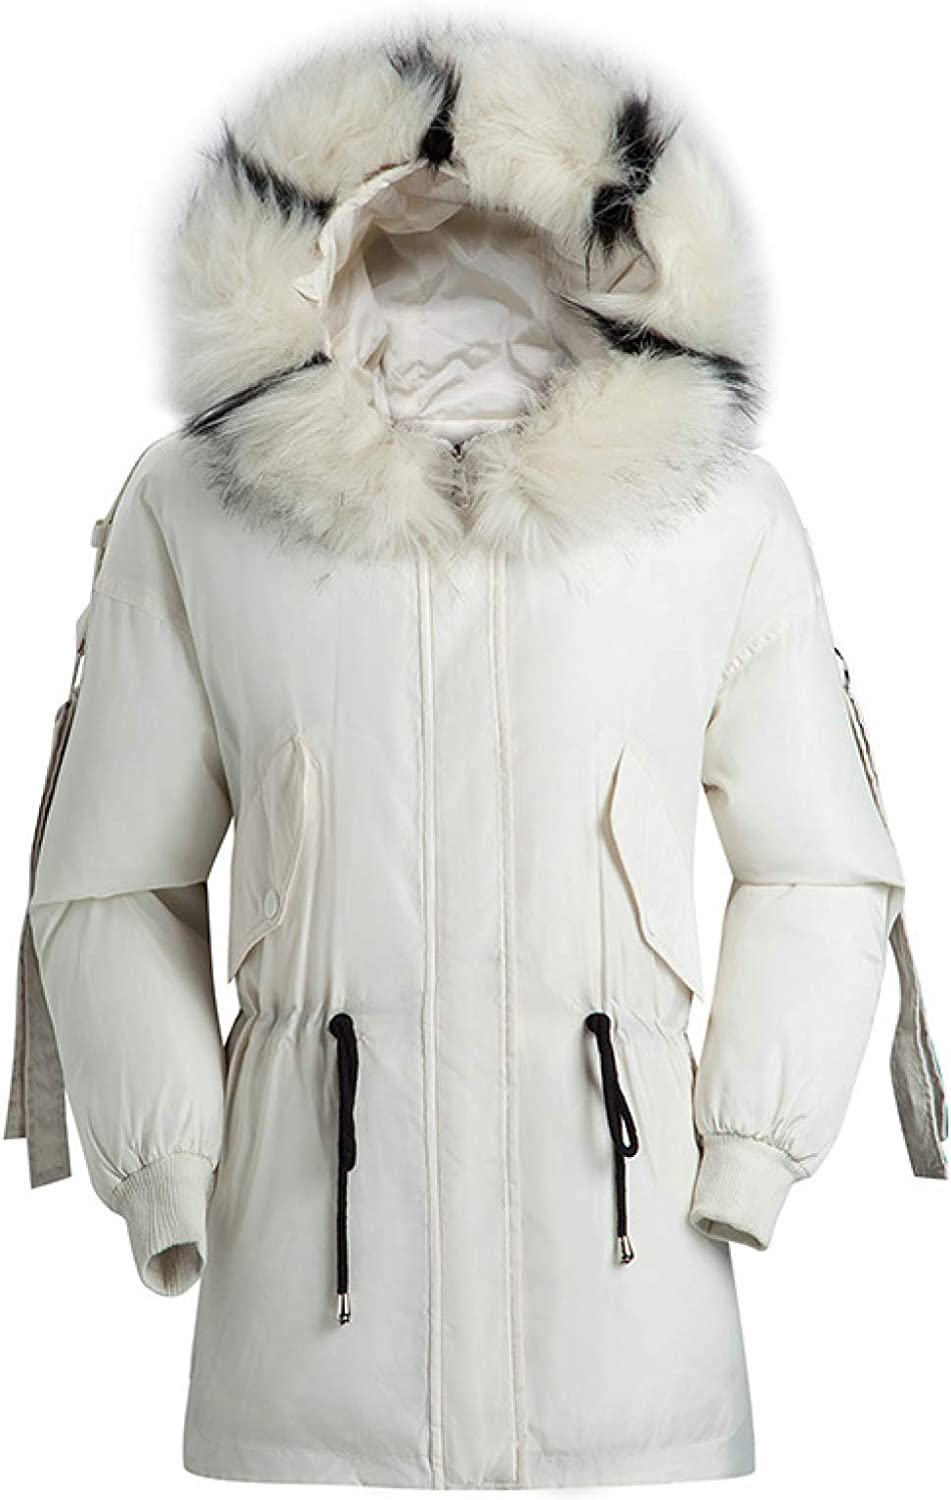 Women's Cotton Filling Quilted Jacket Women's Faux Fur Trim Hood Outerwear Jacket with Pocket